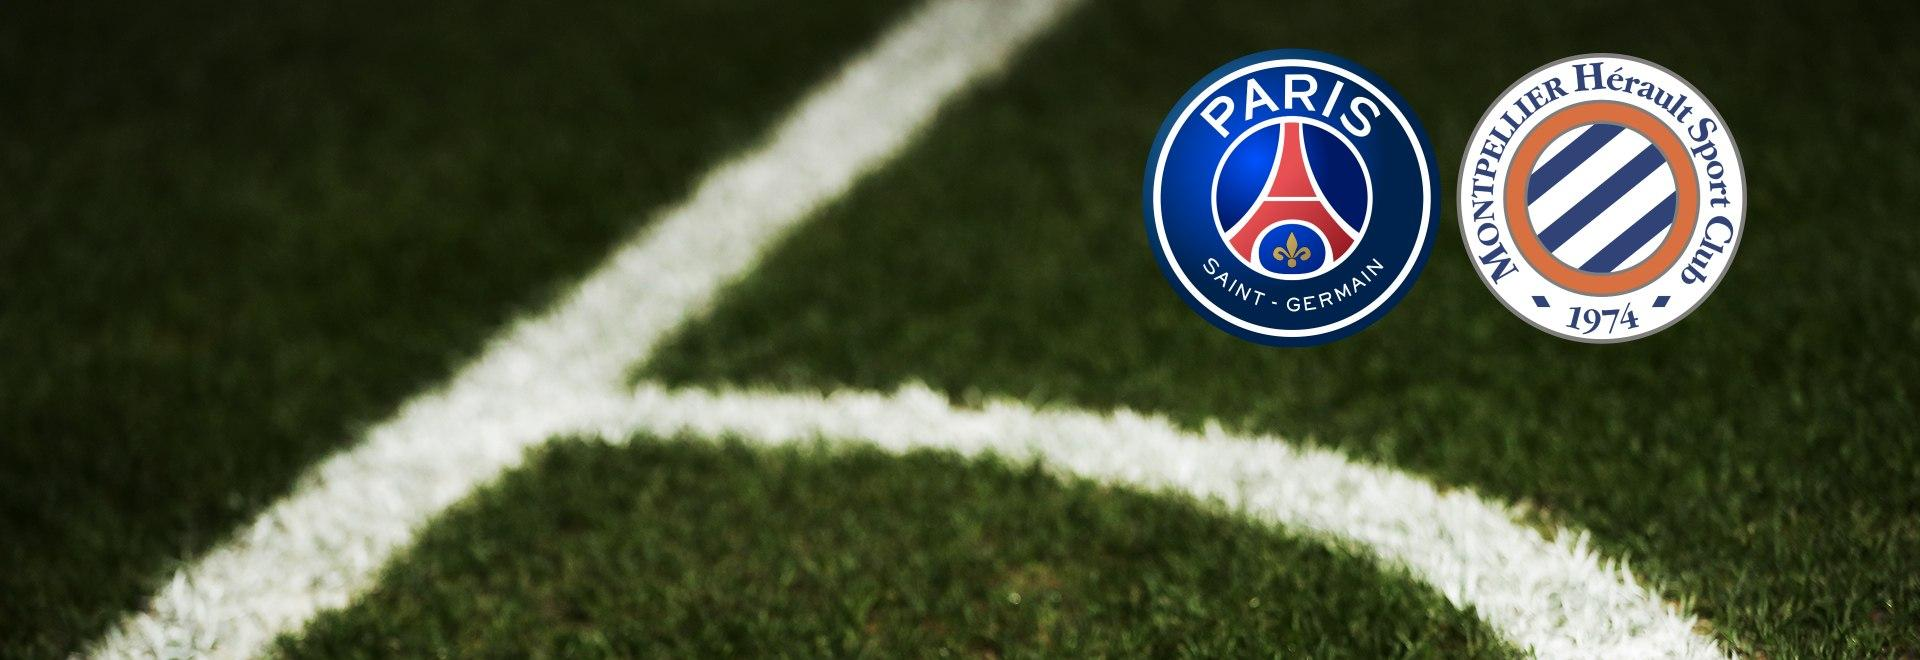 PSG - Montpellier. 22a g.